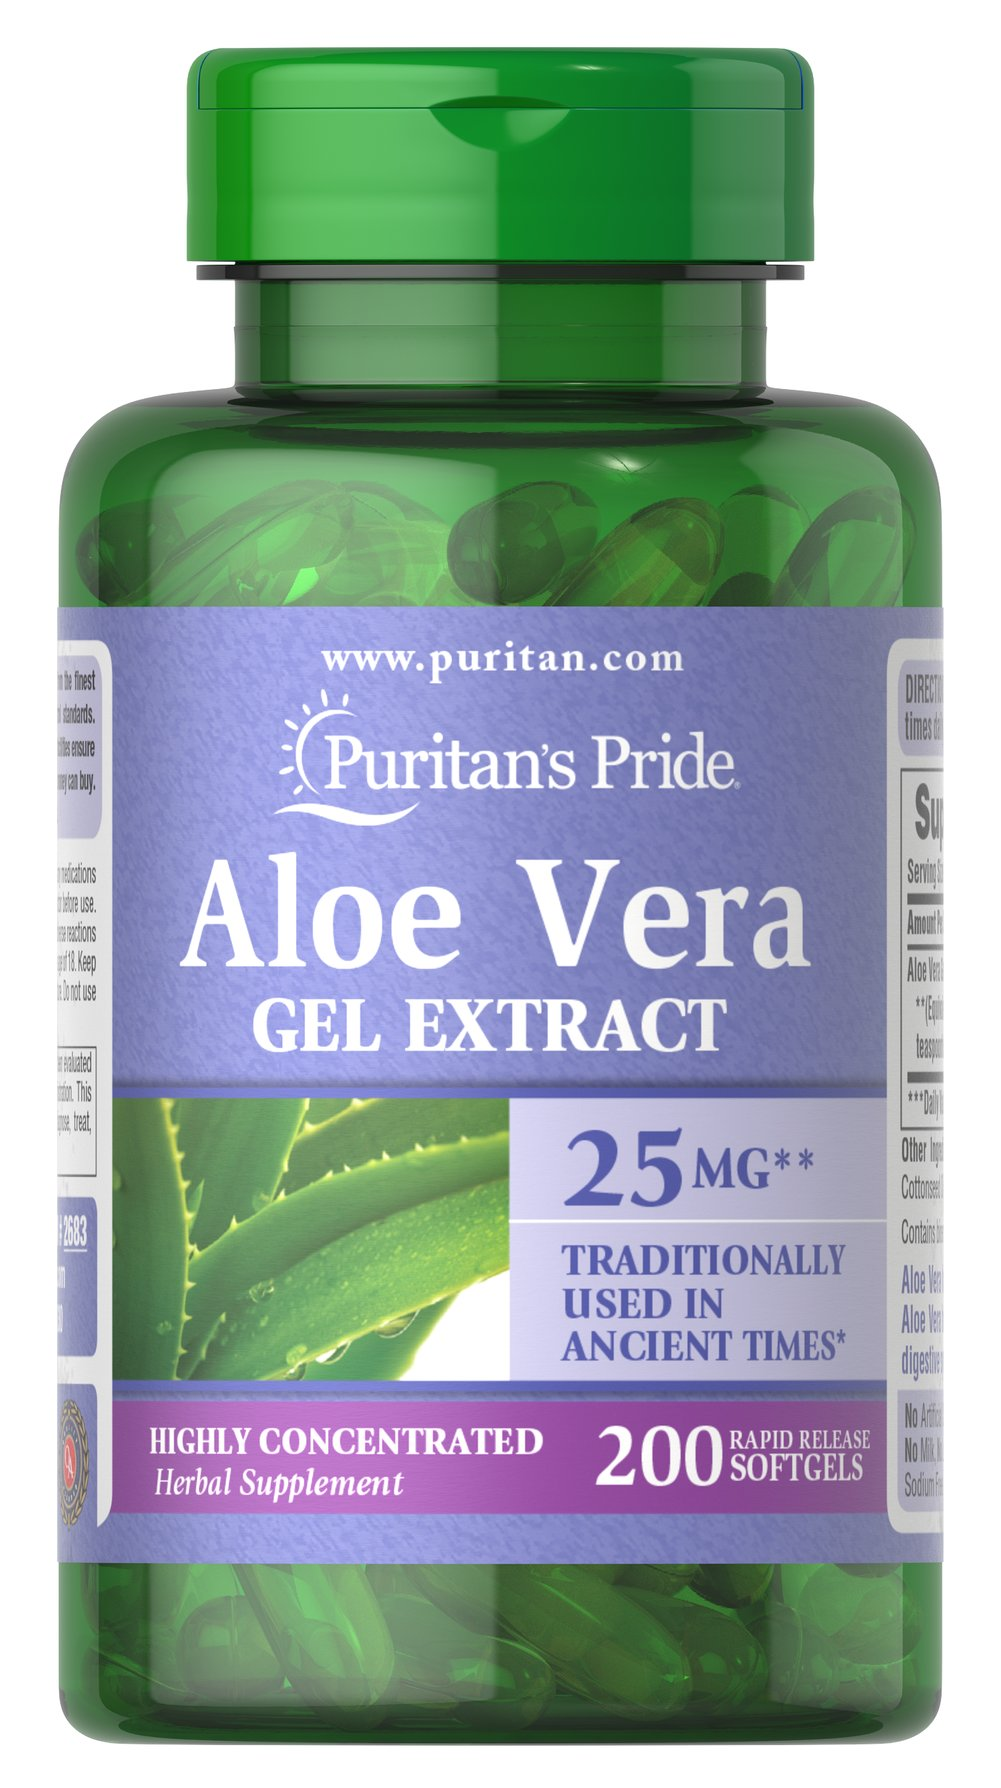 Aloe Vera Extract 25 mg  200 Softgels 25 mg $18.99